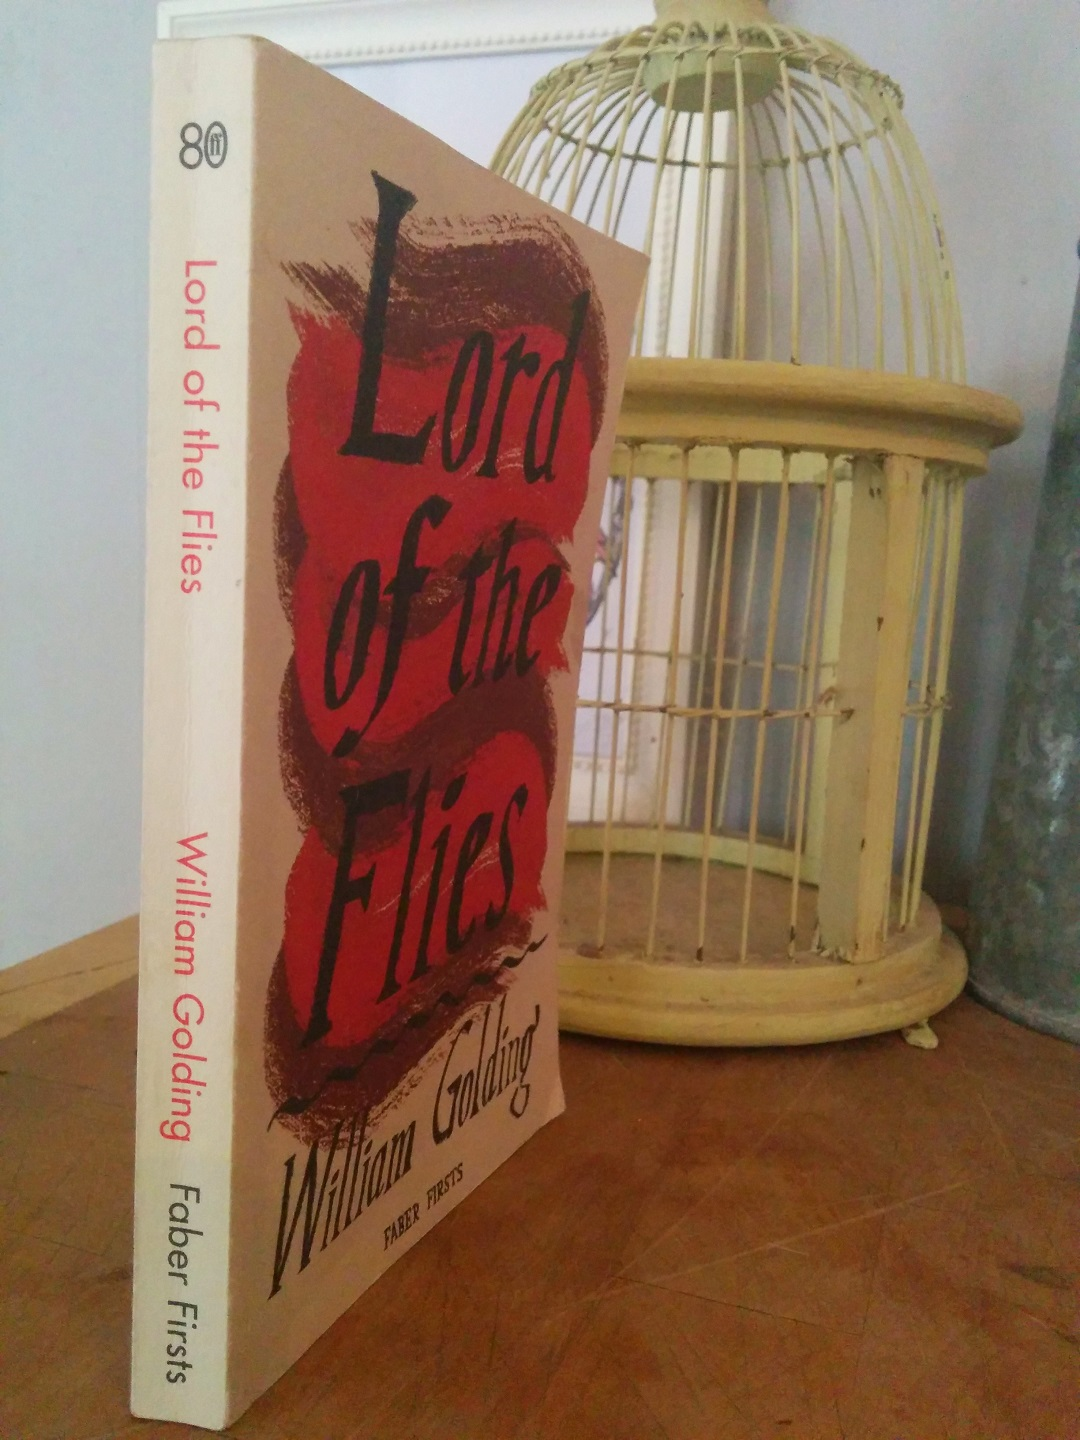 lord of the flies critical essay something the lord made essay  lord of the flies book report lord of the flies summary of chapter lord of the essay lord of the flies civilization vs savagery